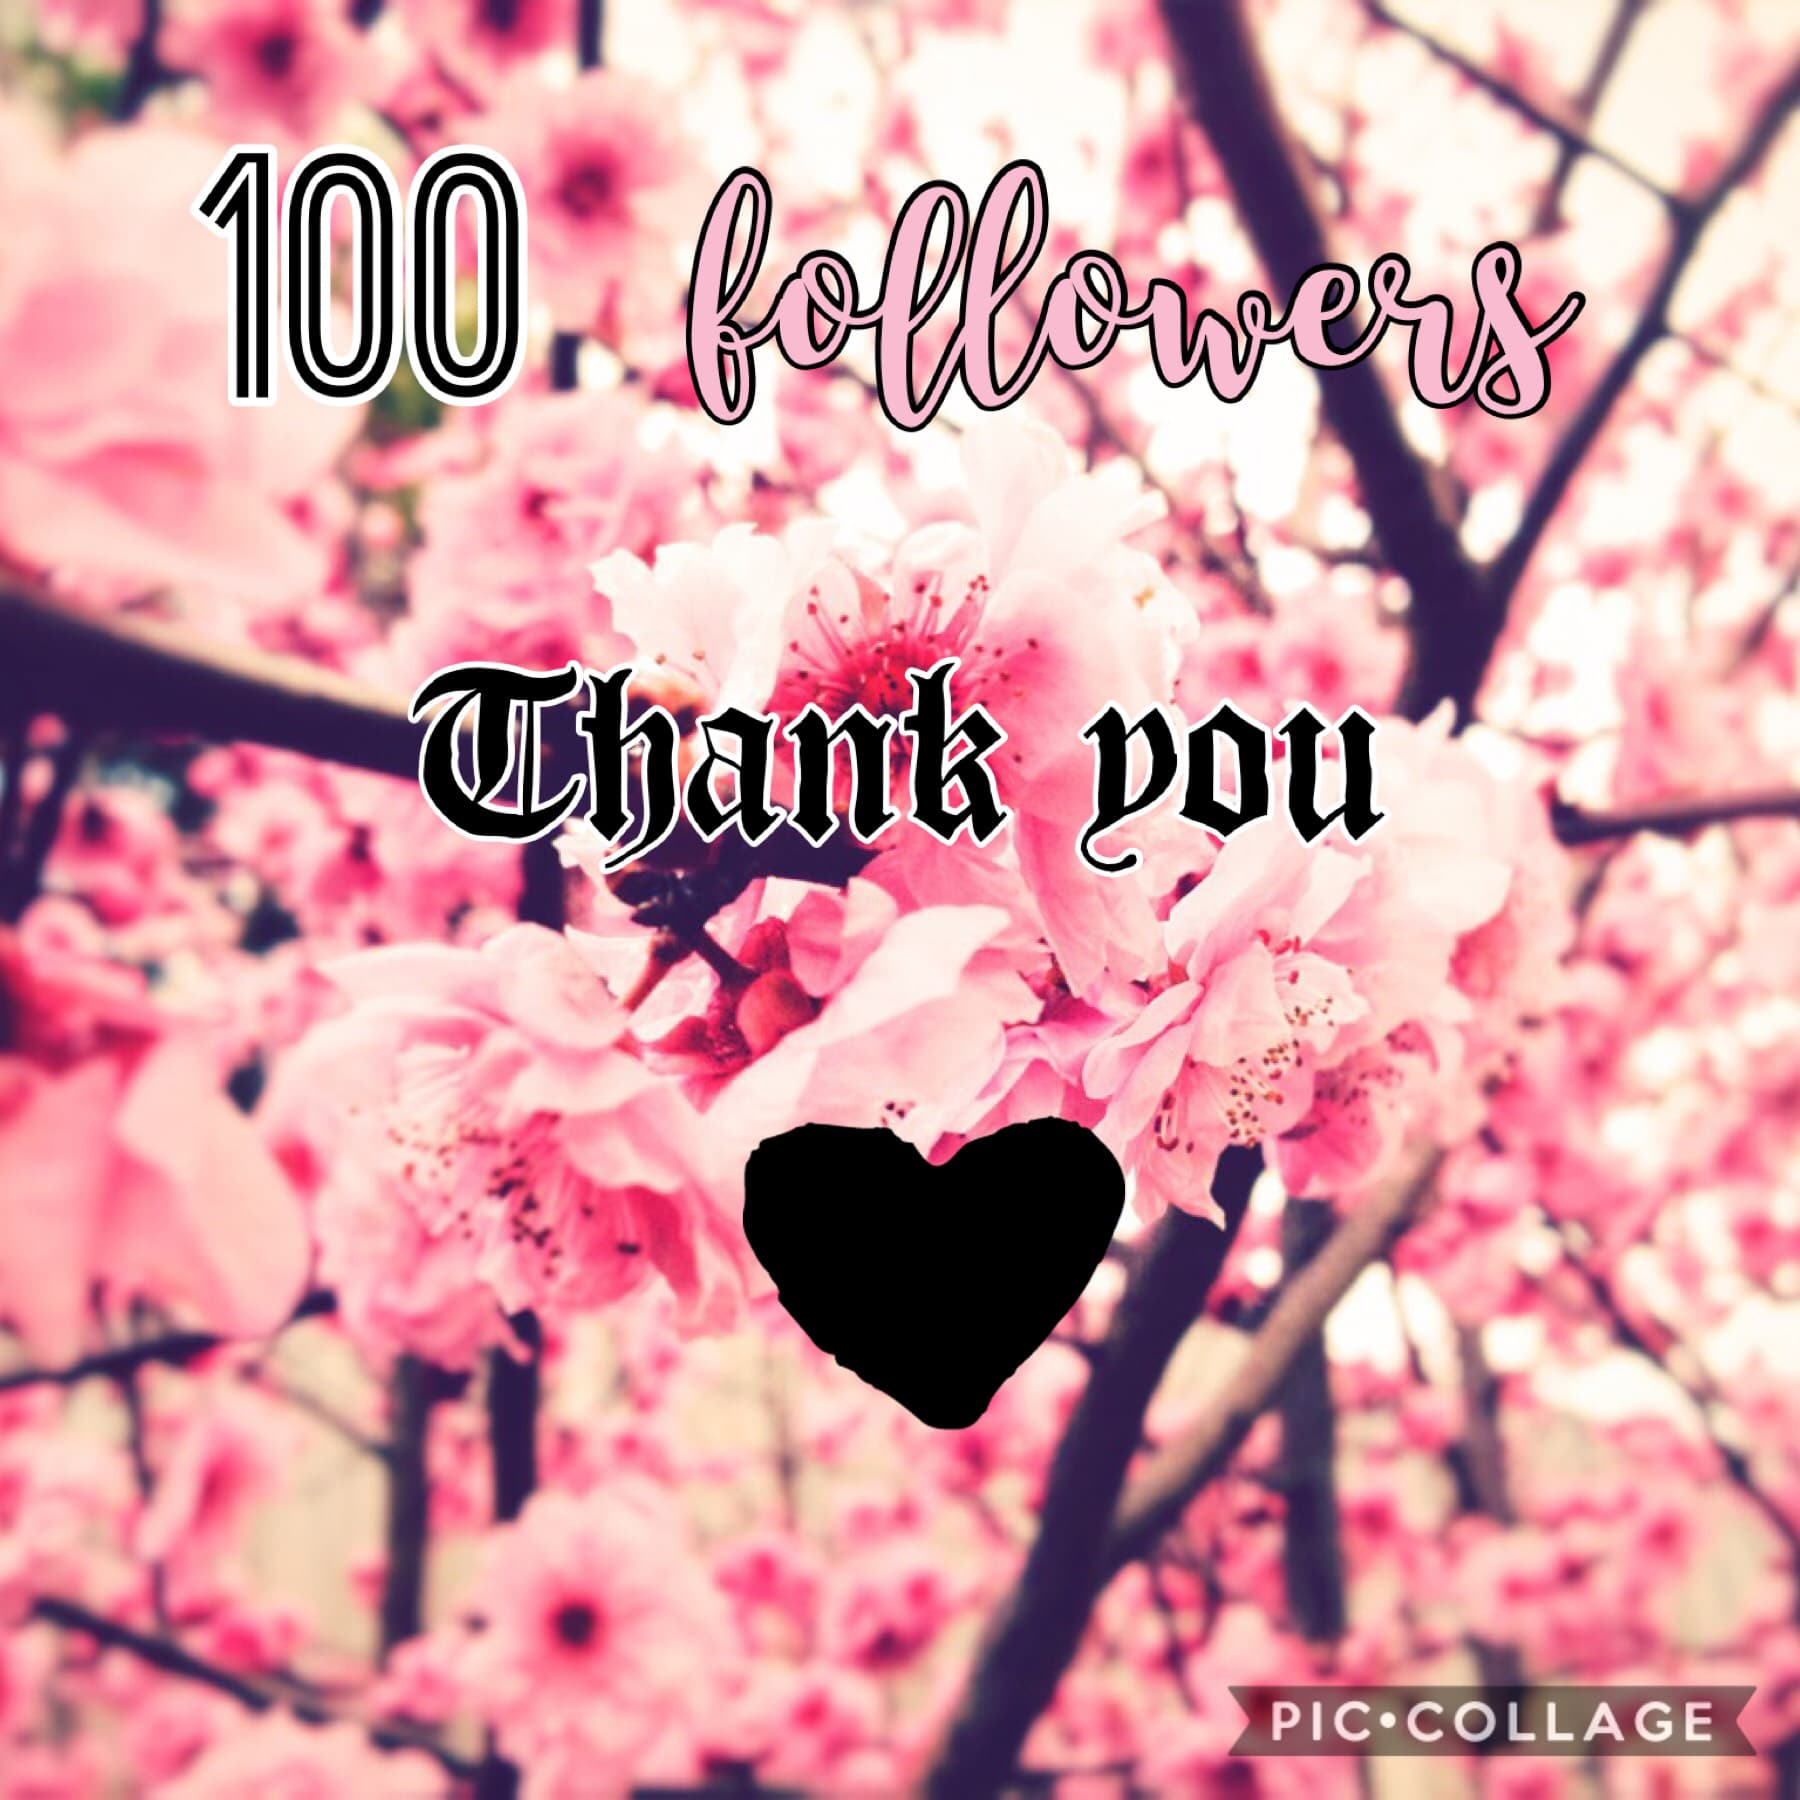 Thank you for the follows, likes and comments 💕♥️